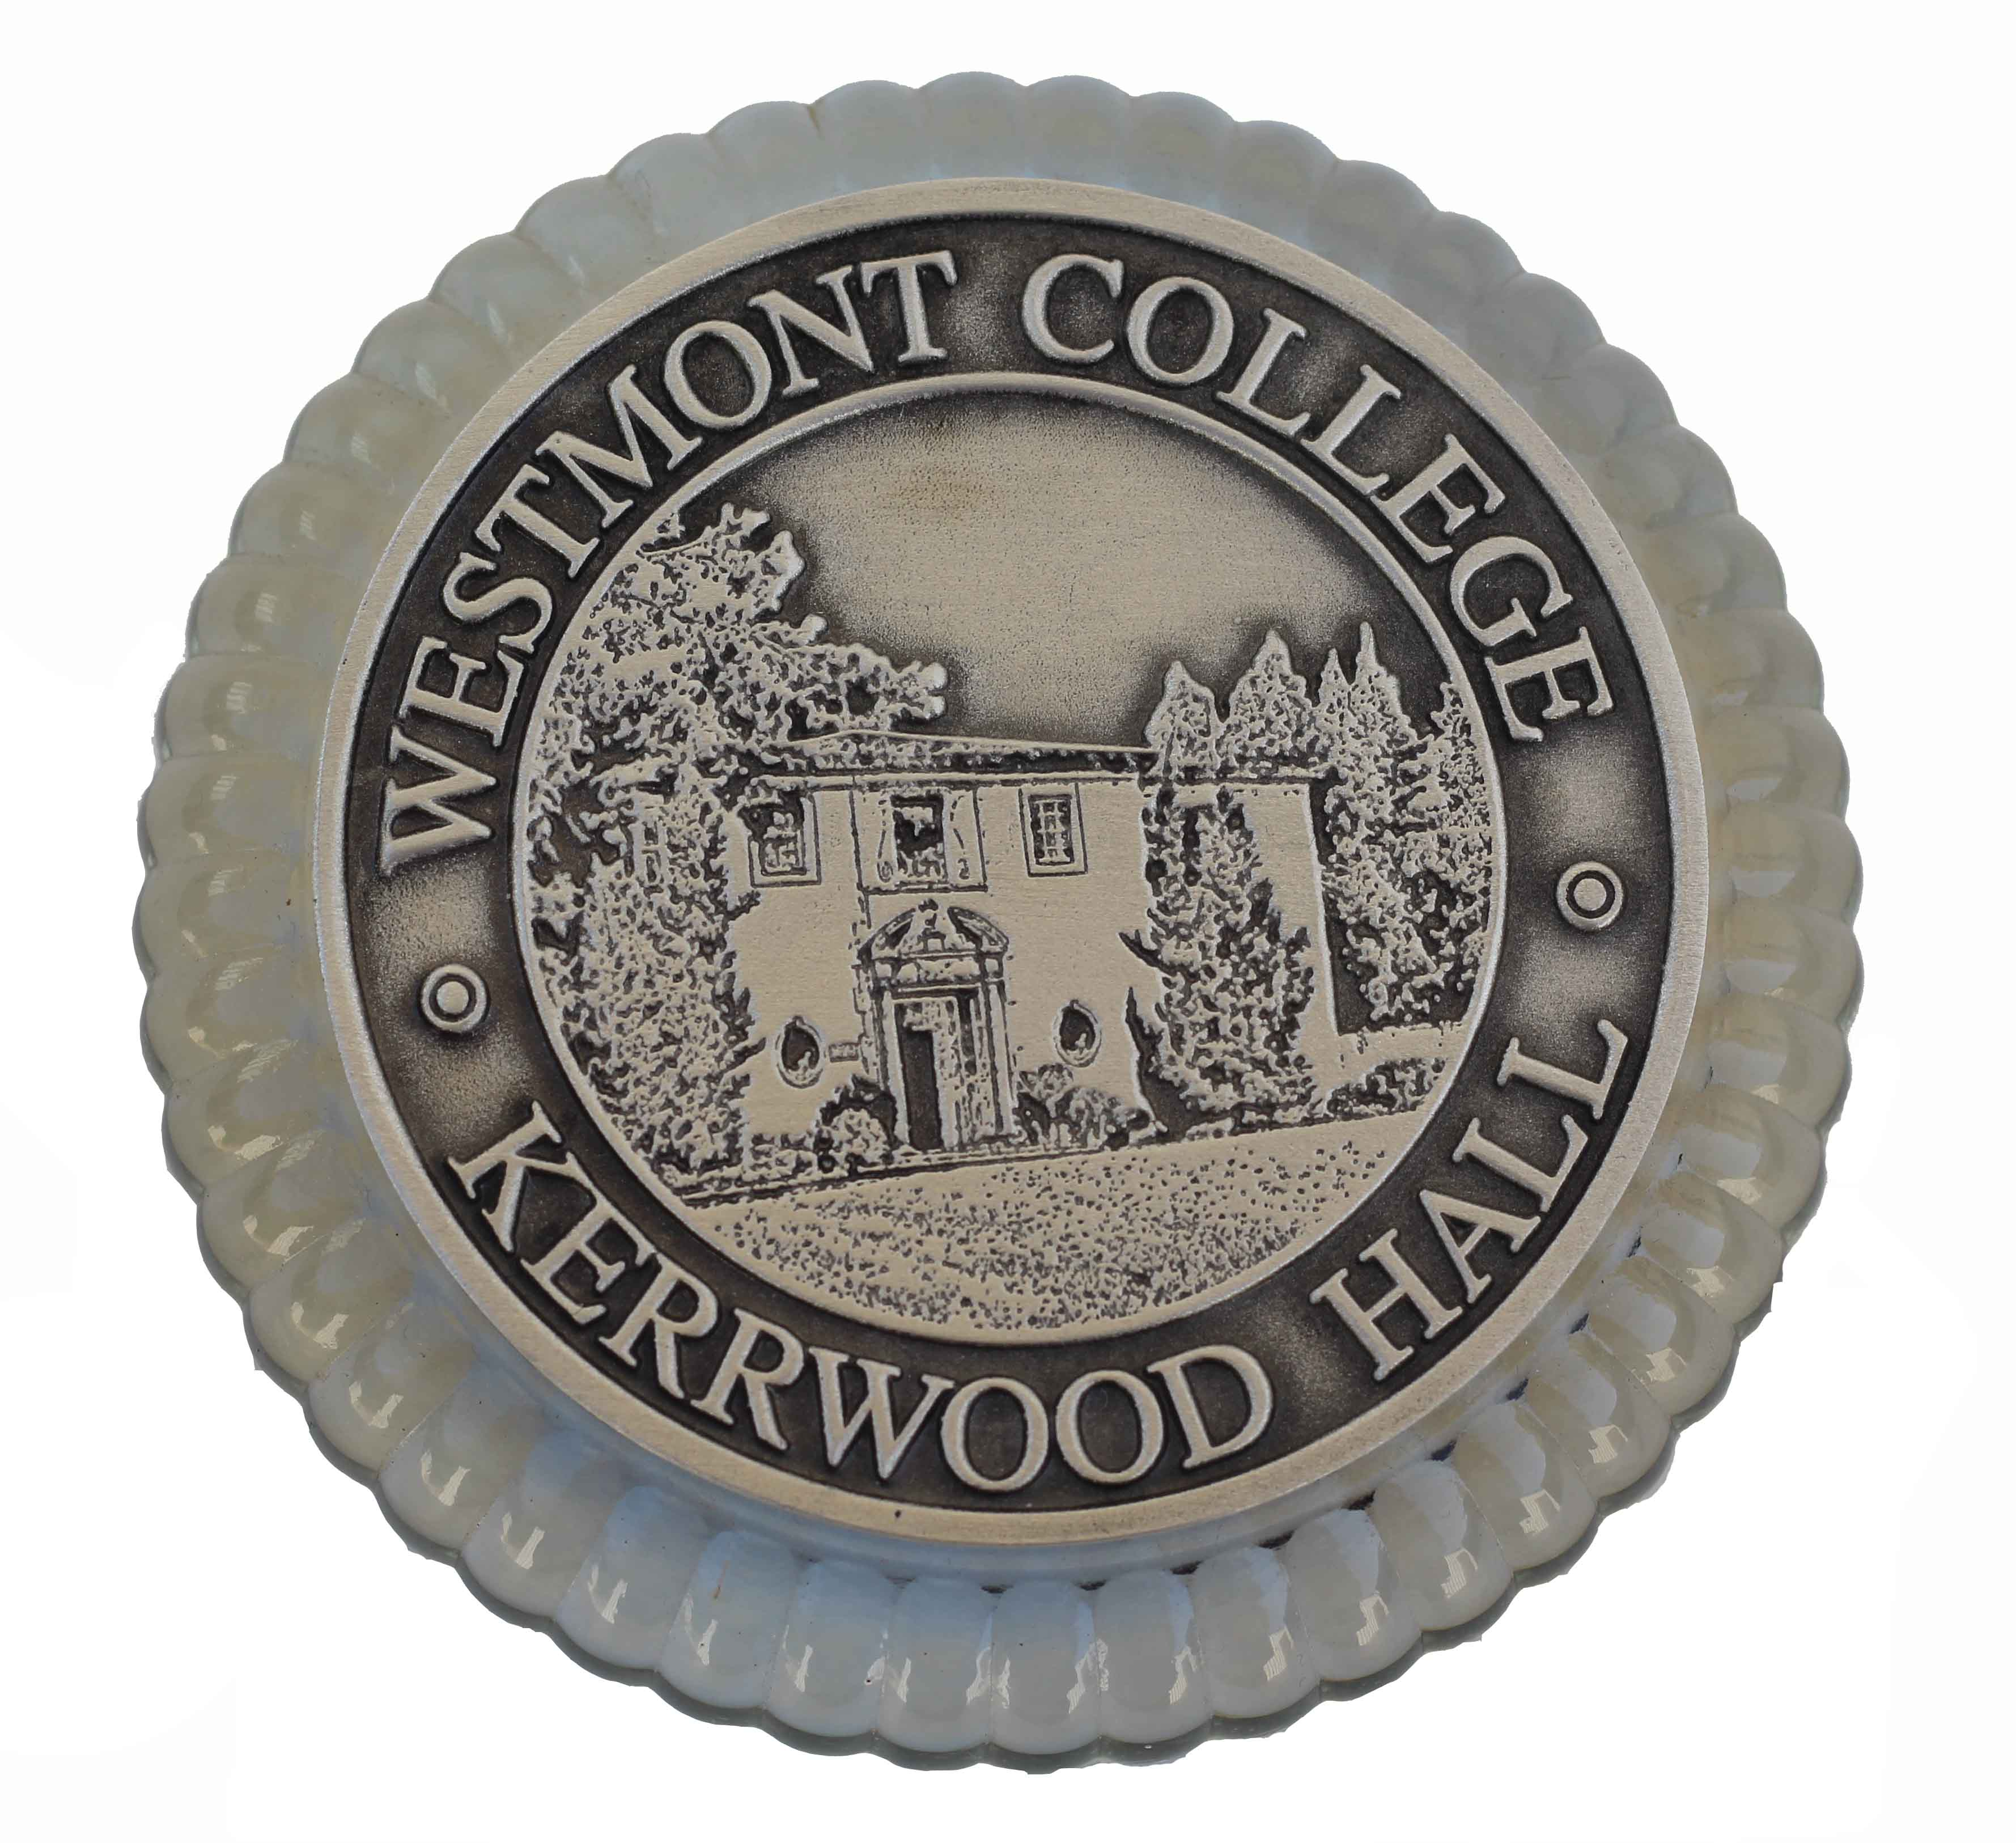 Image for the Crystal and Silver Kerwood Hall Paperweight product